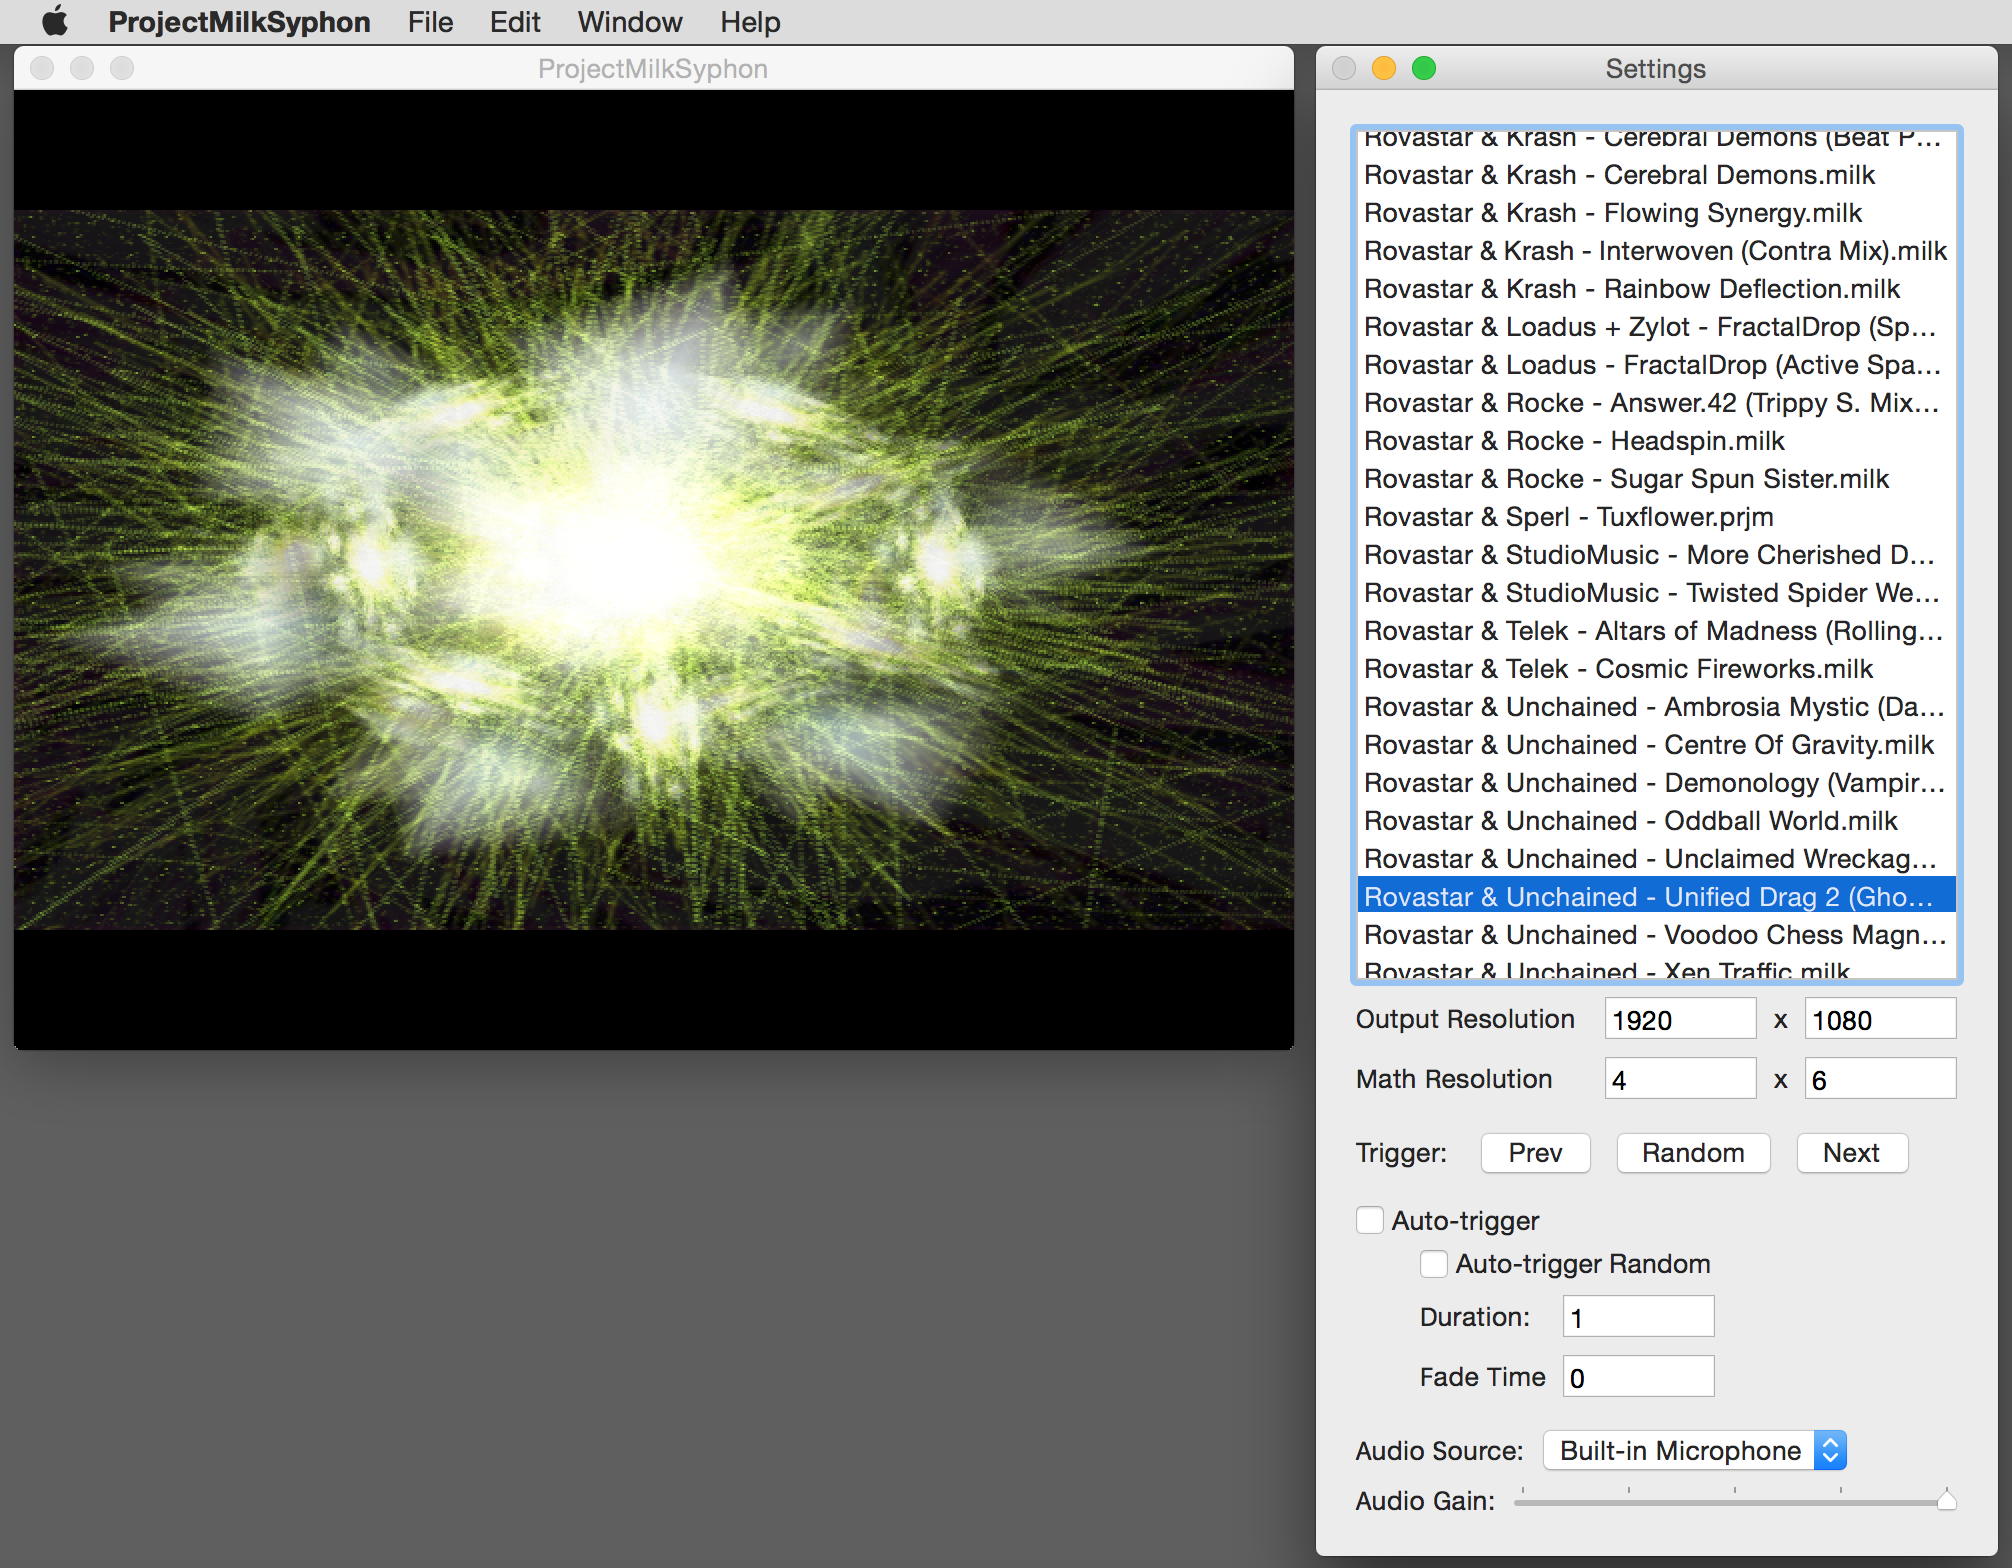 Use apps like ProjectMilkSyphon as a source in your favorite VJ software.